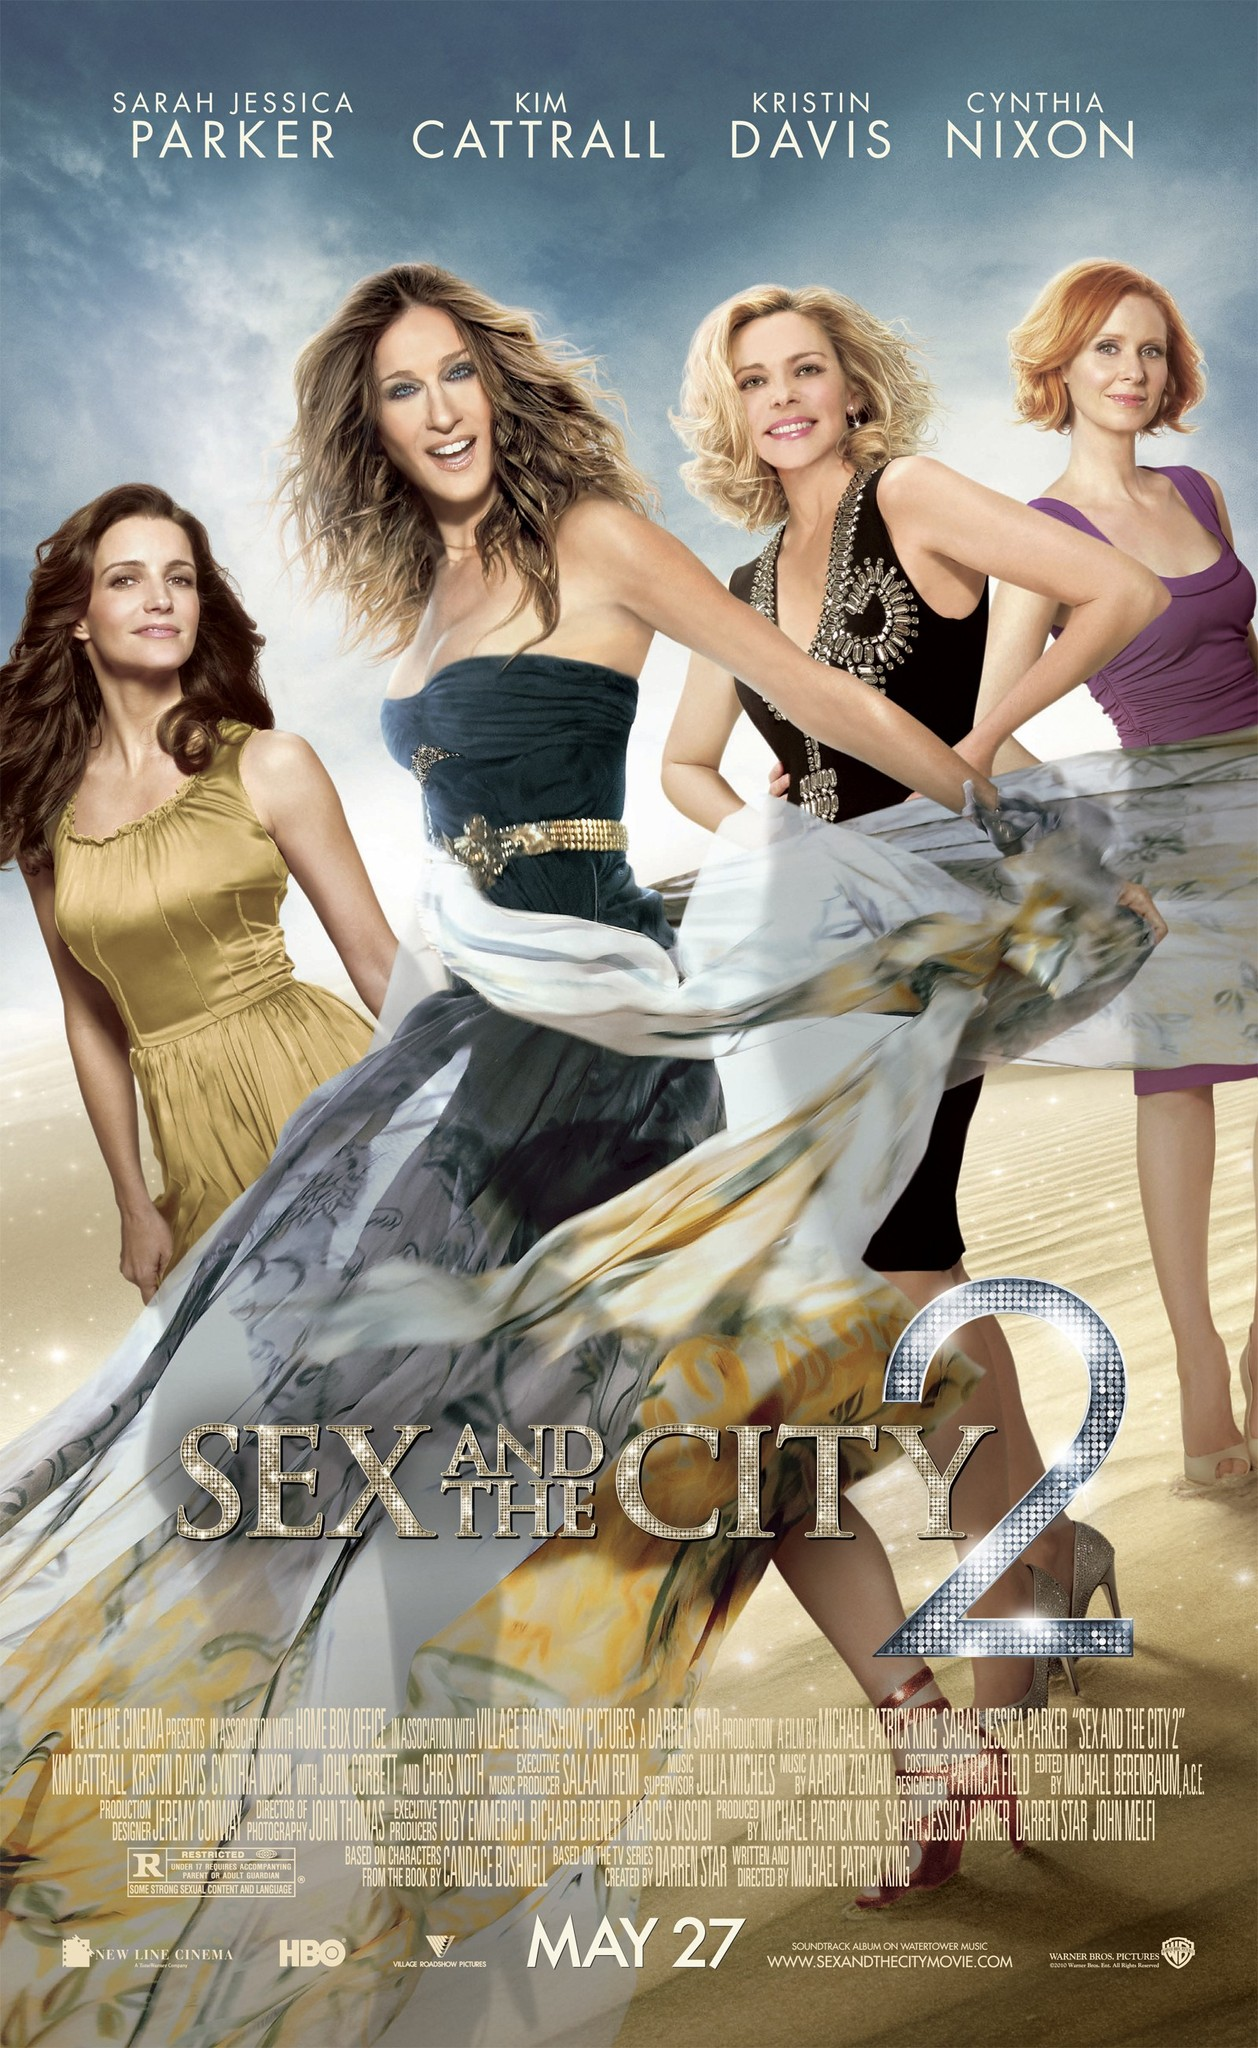 Reviews of sex and the city film